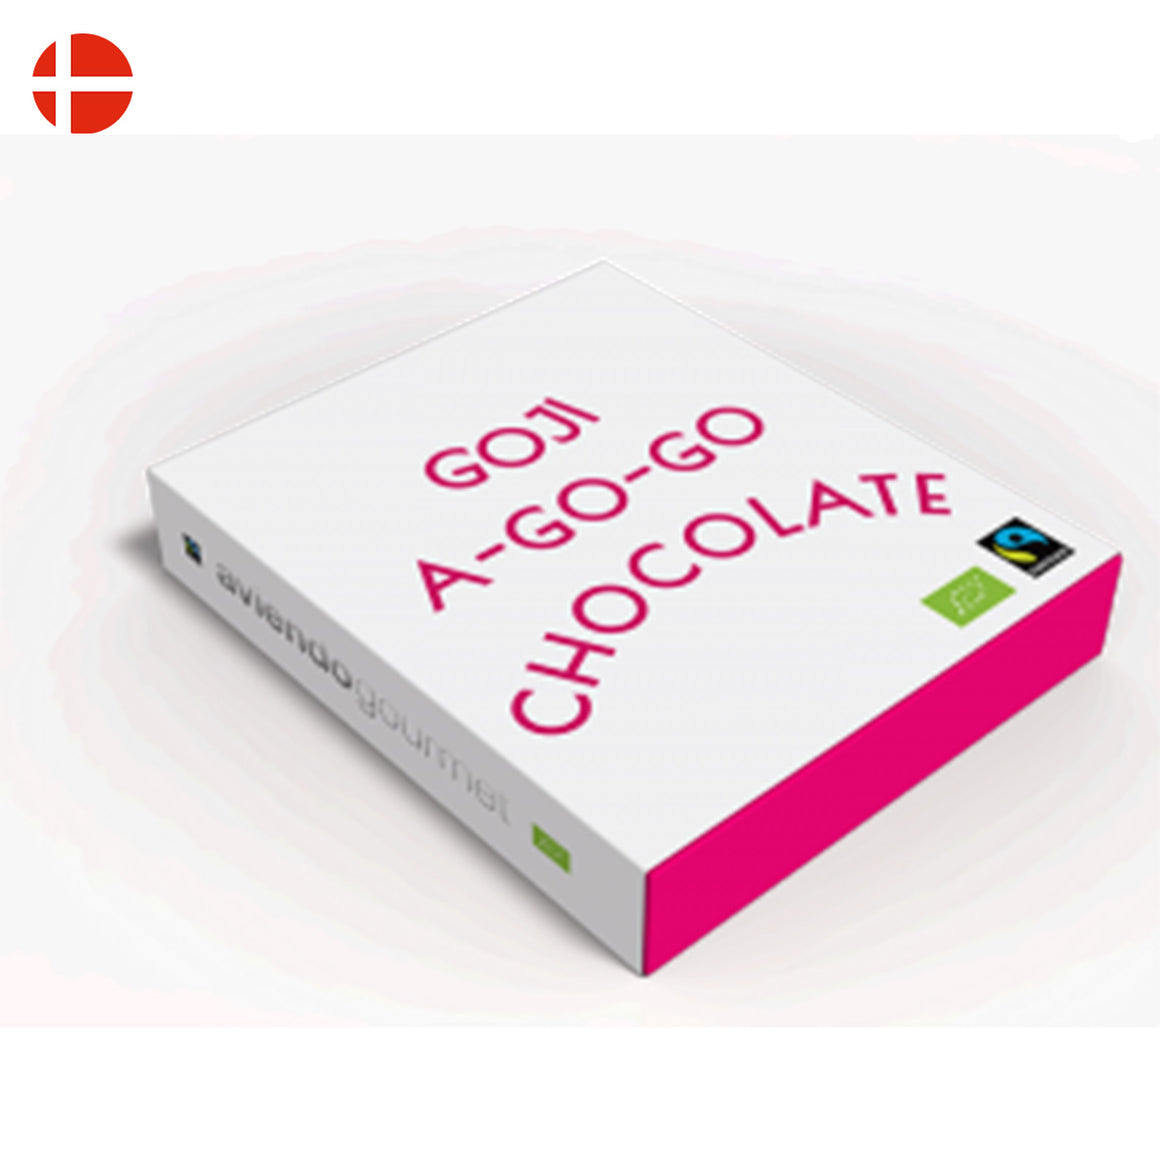 AVIENDO Gourmet Goji a-Go-Go Chocolate - Lifecode Boutique